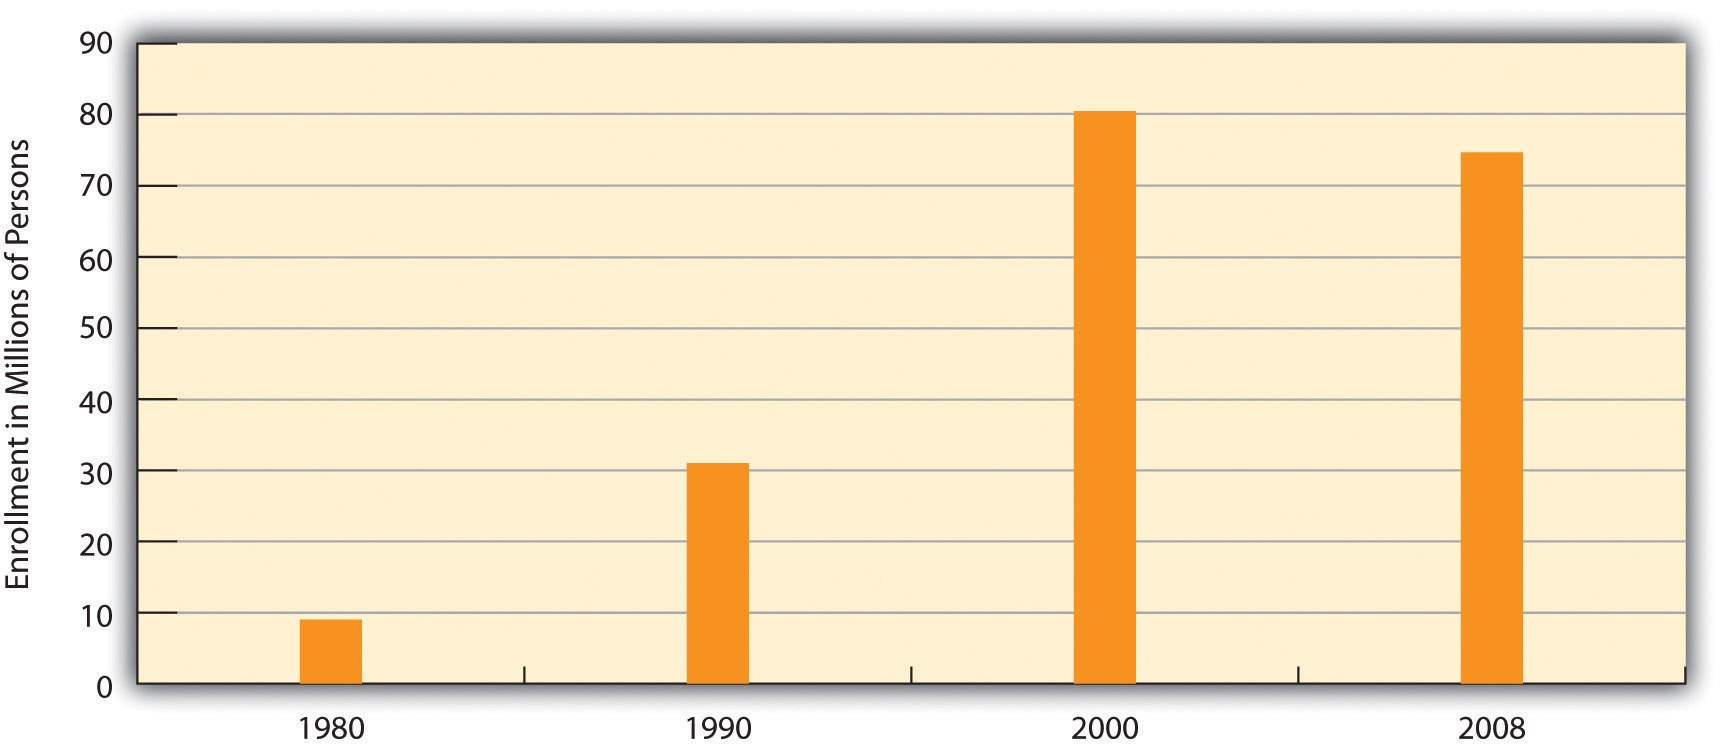 Growth of Health Maintenance Organizations (HMOs) graph. This shows that the organizations grew from around 10 million enrolled people in 1980 to 80 million in 2000, then dropped down to 75 million in 2008